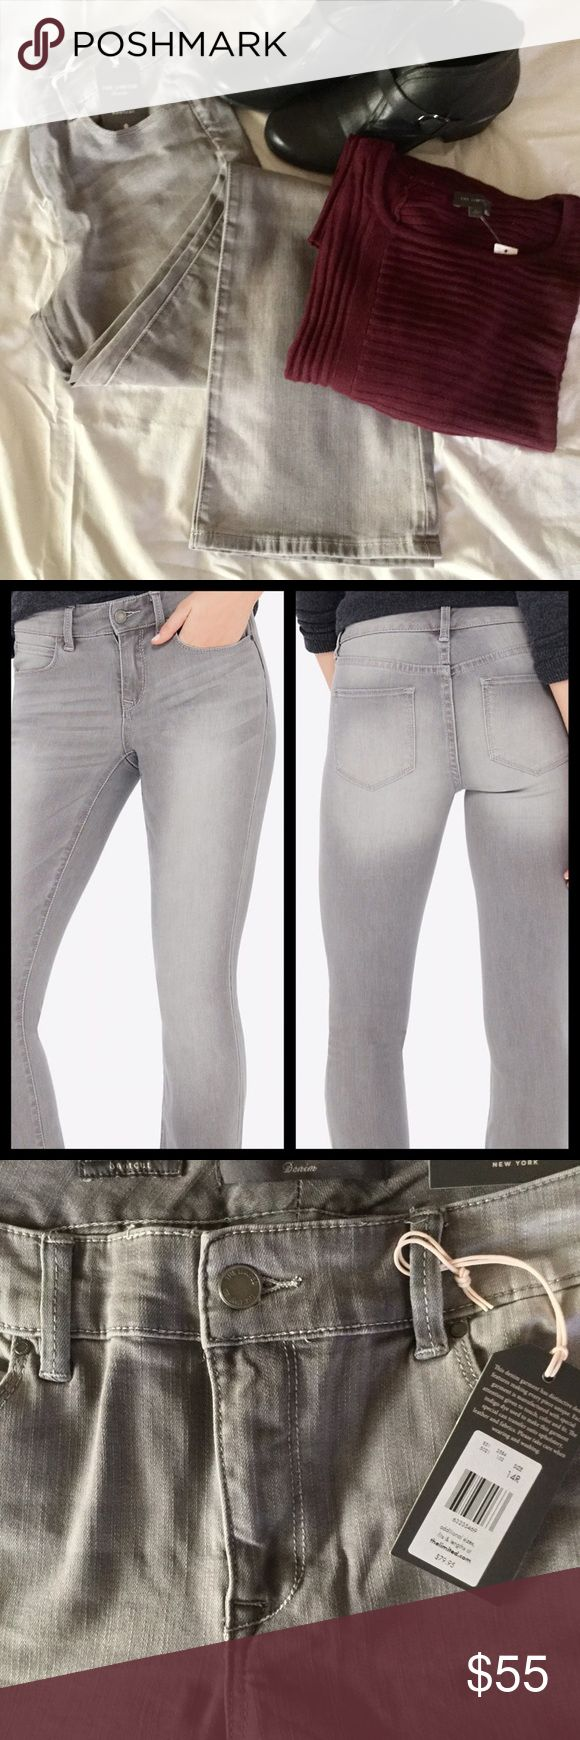 "💋SALE-SILVER-GRAY WASHED JEANS! THE LIMITED, NWT When it comes to jeans, fit is everything. These universal stretch, premium denim jeans conform to your curves so these jeans fit like they were made just for you. Features a contoured waist for a comfortable fit without back-gapping. Gorgeous silver gray wash. New, never worn. Comes in original packaging from The Limited, with tags. * Fly front, 5-pocket style  * Bootcut silhouette * Inseam: 33"" * 69% cotton/20% polyester/ 10% rayon / 1%…"